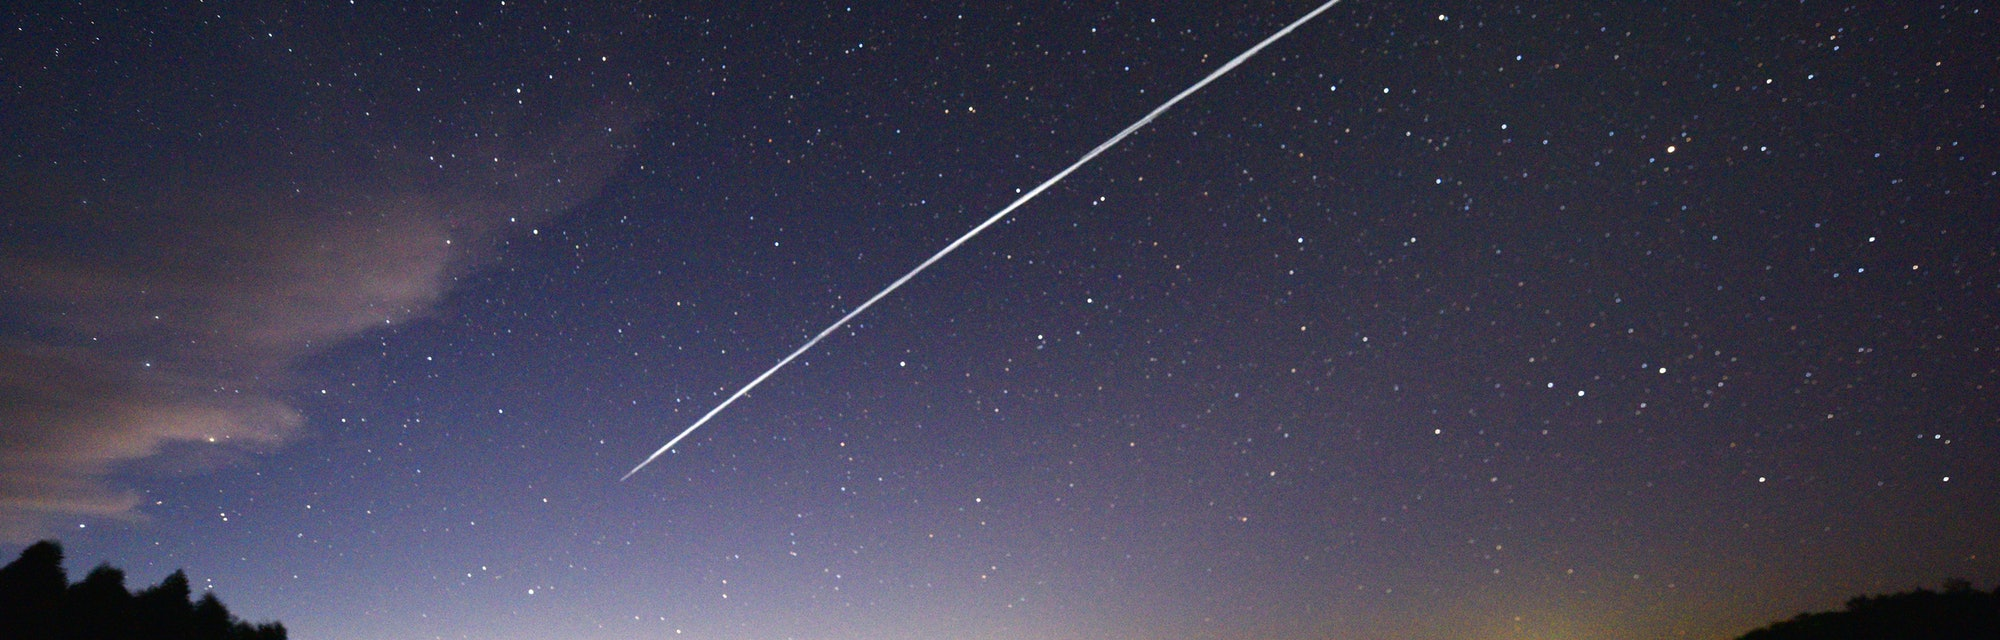 TOPSHOT - This long-exposure image shows a trail of a group of SpaceX's Starlink satellites passing over Uruguay as seen from the countryside some 185 km north of Montevideo near Capilla del Sauce, Florida Department, on February 7, 2021. (Photo by Mariana SUAREZ / AFP) (Photo by MARIANA SUAREZ/AFP via Getty Images)